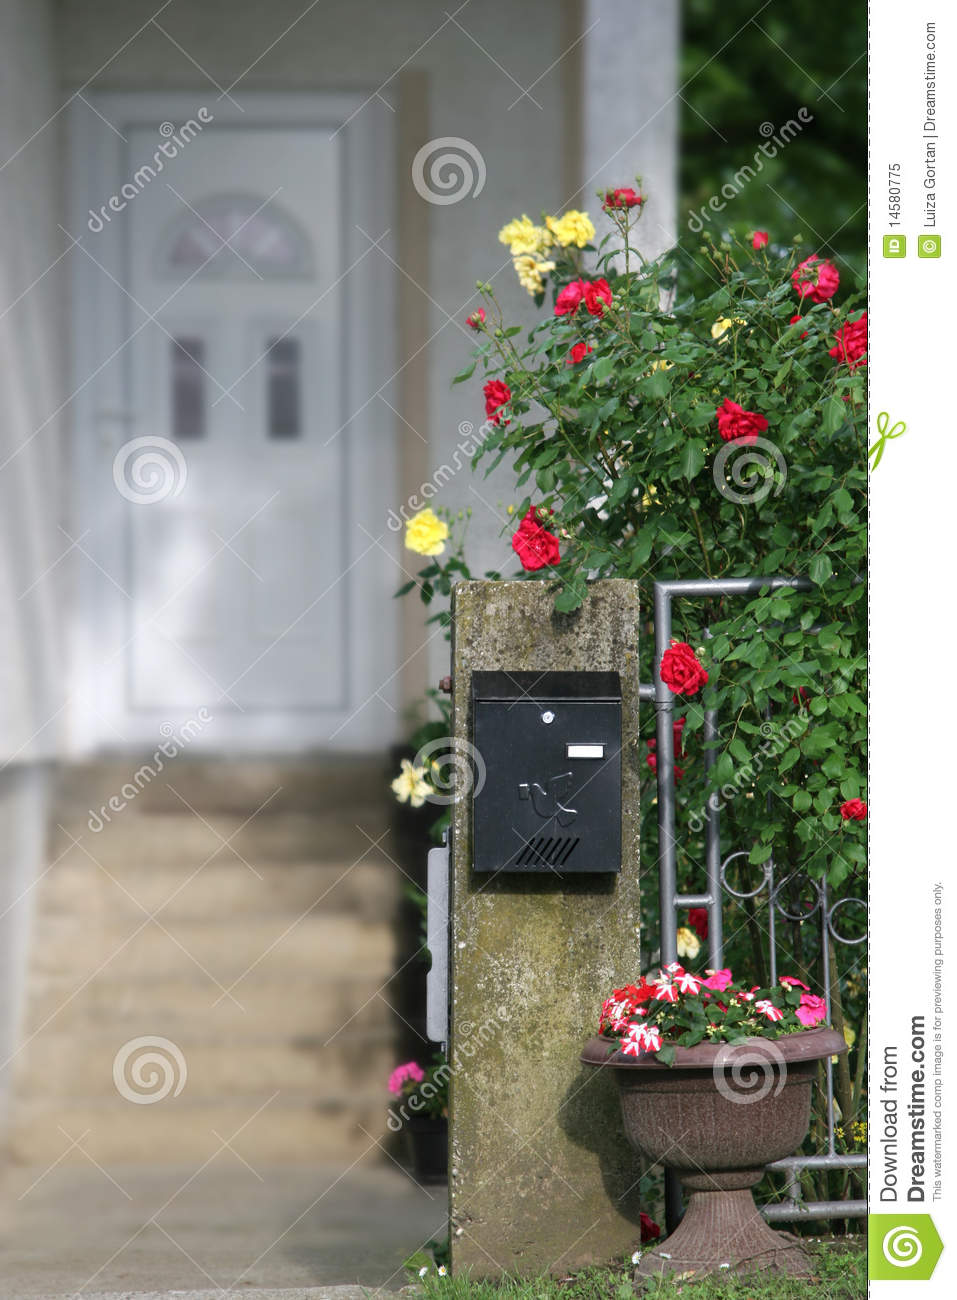 mailbox and flowers in front of a house stock image. Black Bedroom Furniture Sets. Home Design Ideas